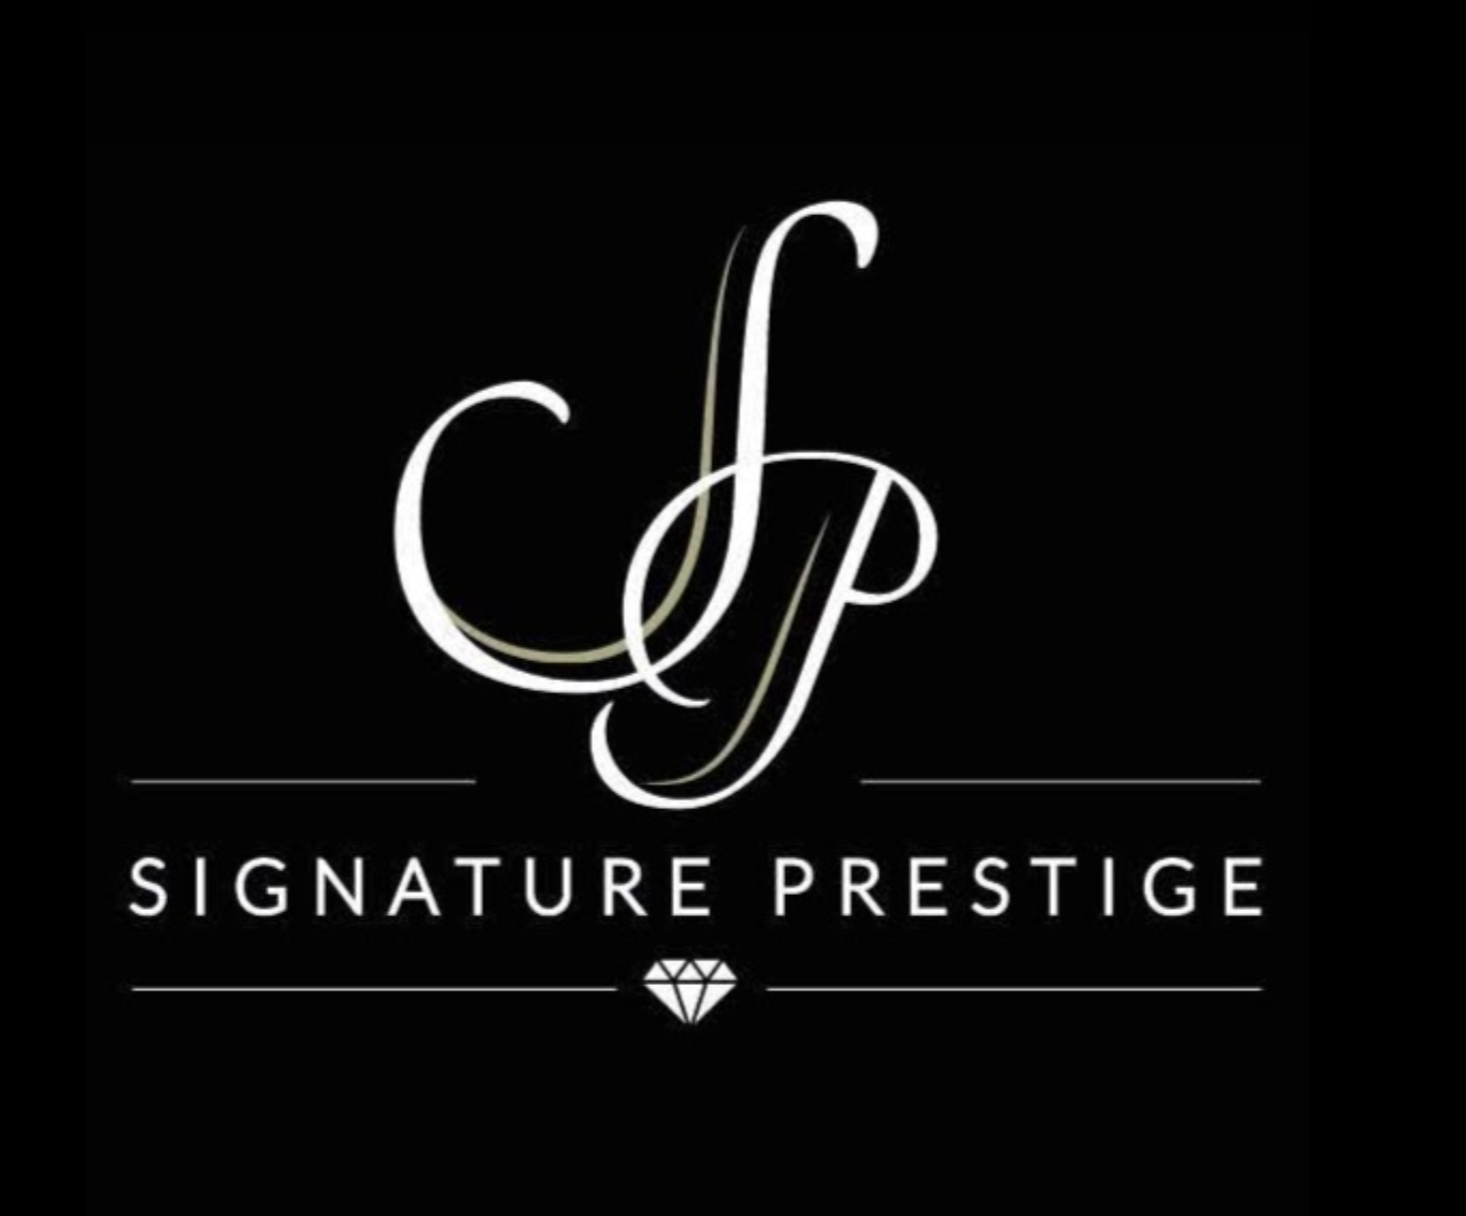 Signature Prestige, A Paris Limousine Company Continues to Offer Exemplary Services in 2021